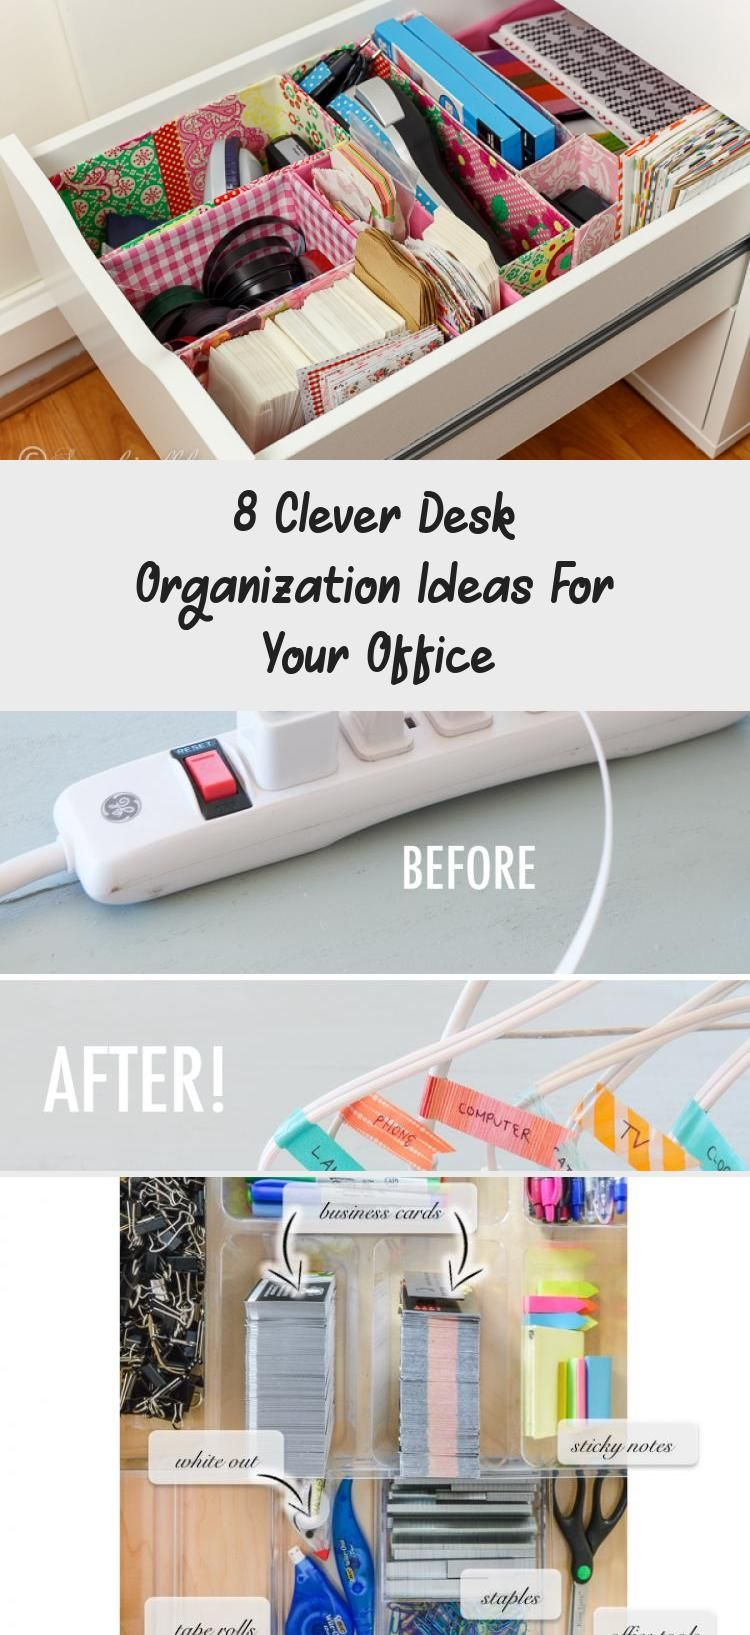 Desk Organization Ideas For Your Office